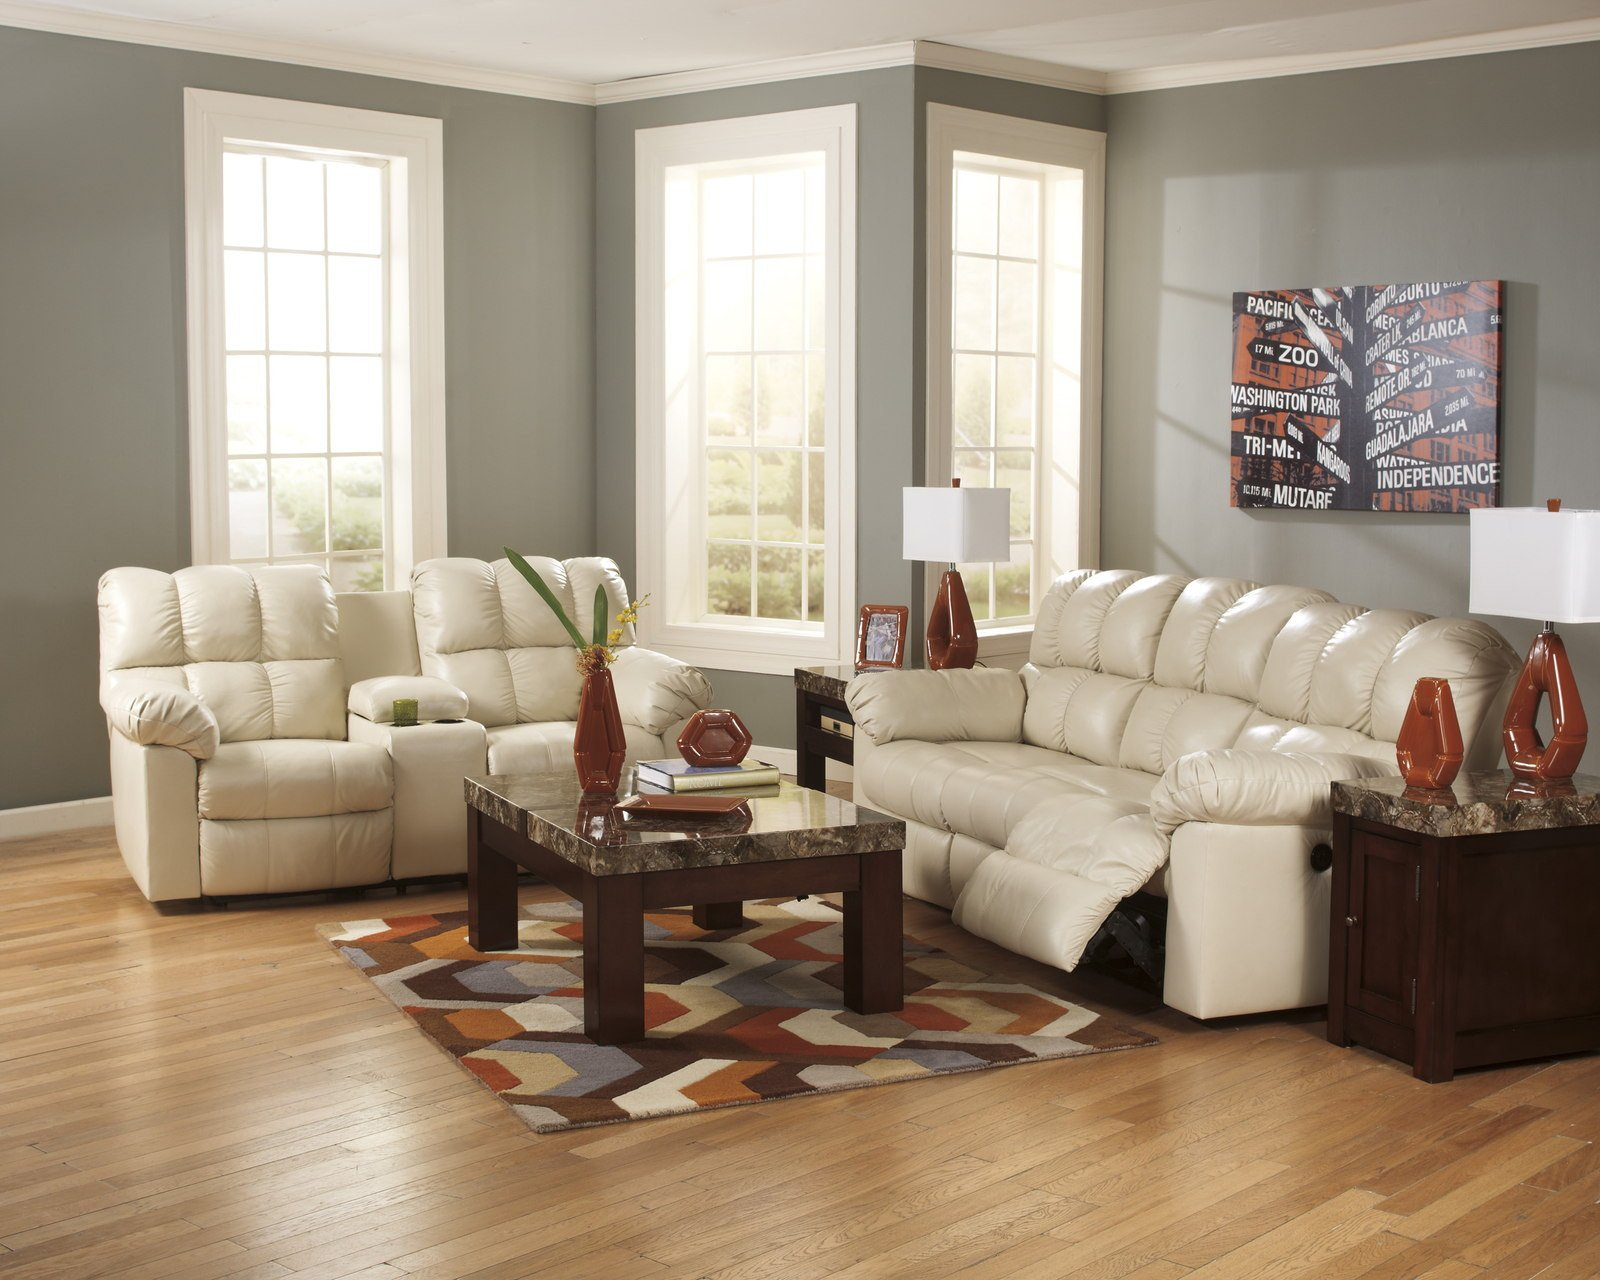 Most Comfortable Living Room Chair Fresh Most fortable Living Room Chair Zion Star